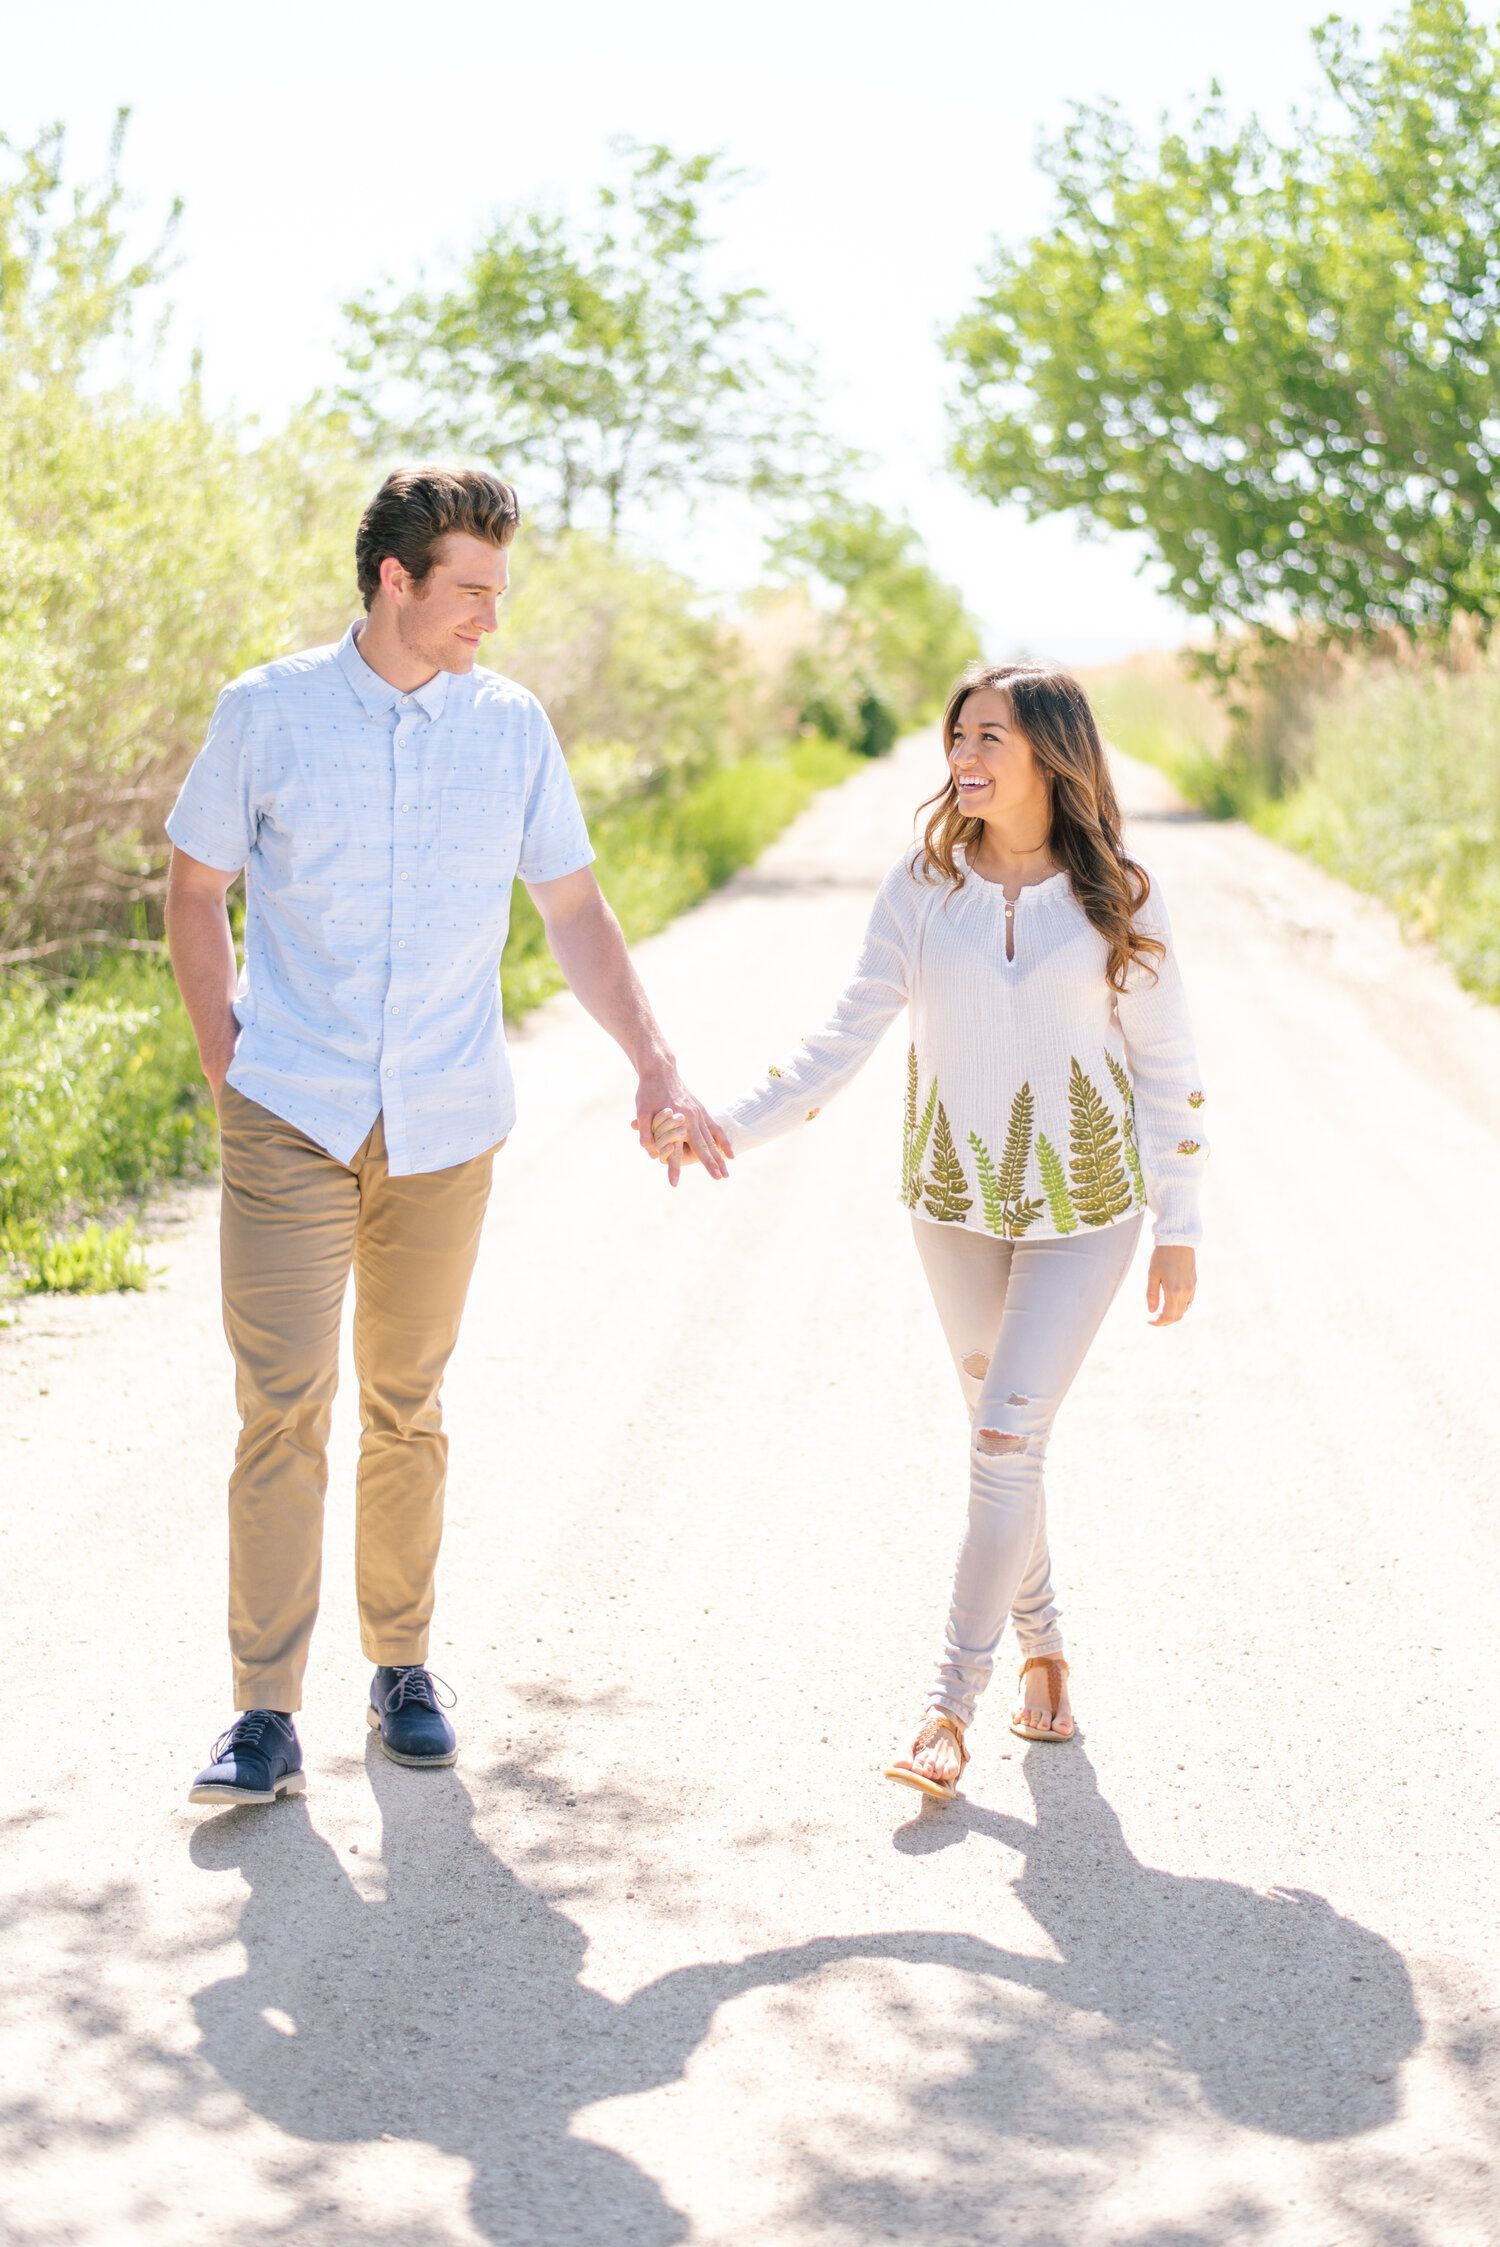 How to Prepare your Beau for Your Engagement Session | Clarity Lane -  unpaved road tall grass bright blue skies outdoor engagement session holding hands walking natural  - #Beau #Clarity #Engagement #EngagementPhotosclassy #EngagementPhotosindian #EngagementPhotoswoods #formalEngagementPhotos #Lane #naturalEngagementPhotos #plussizeEngagementPhotos #Prepare #rusticEngagementPhotos #Session #whattowearforEngagementPhotos